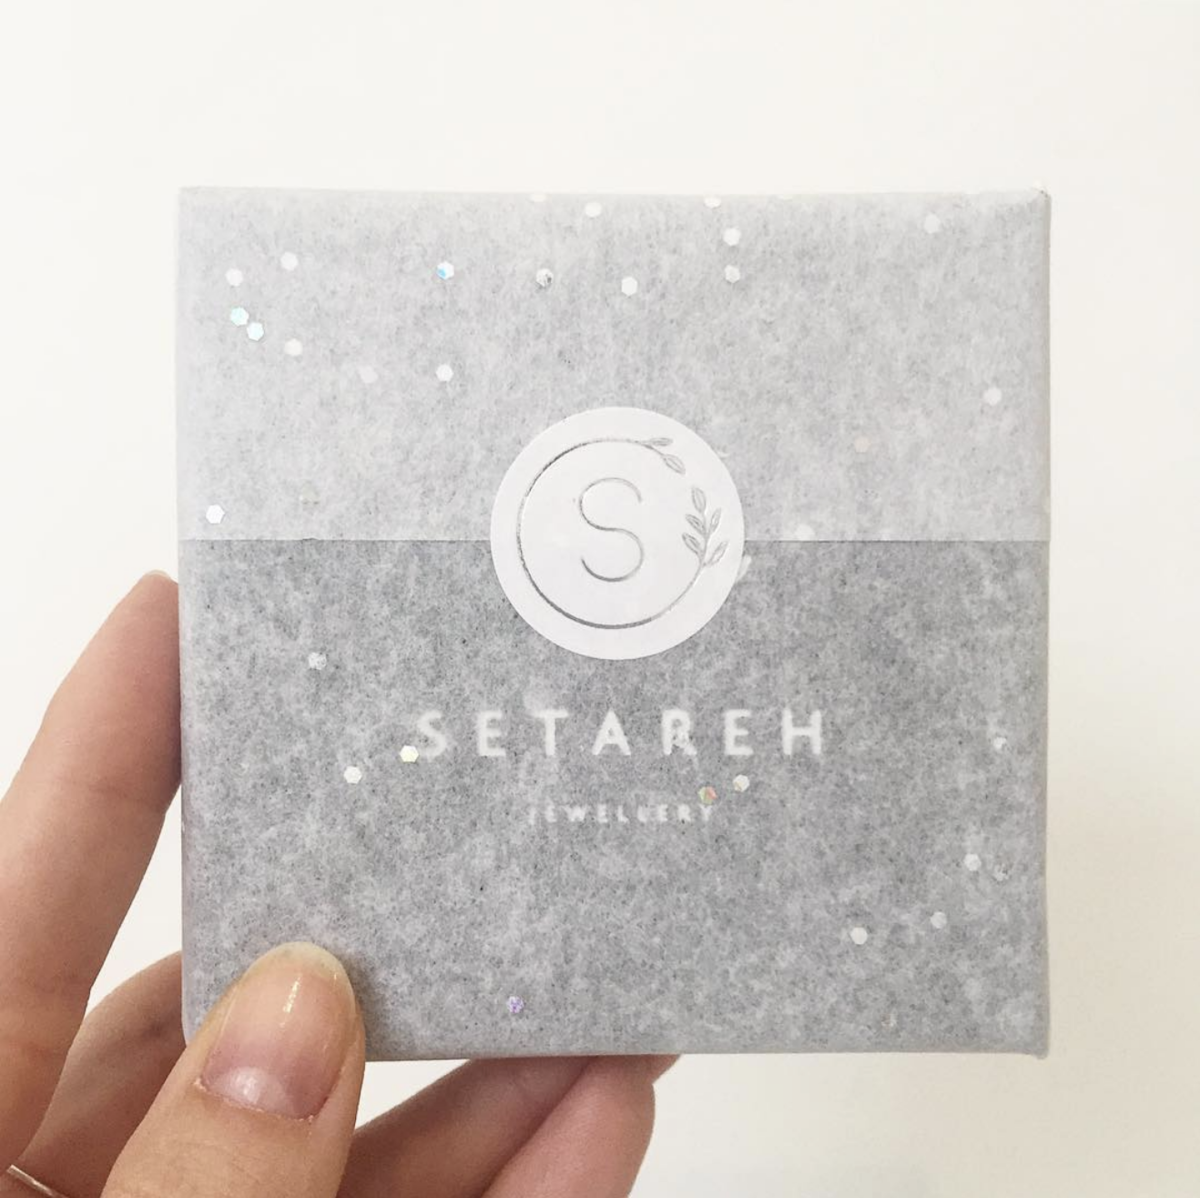 Setareh Jeweller 2018-05-30 at 4.13.46 PM